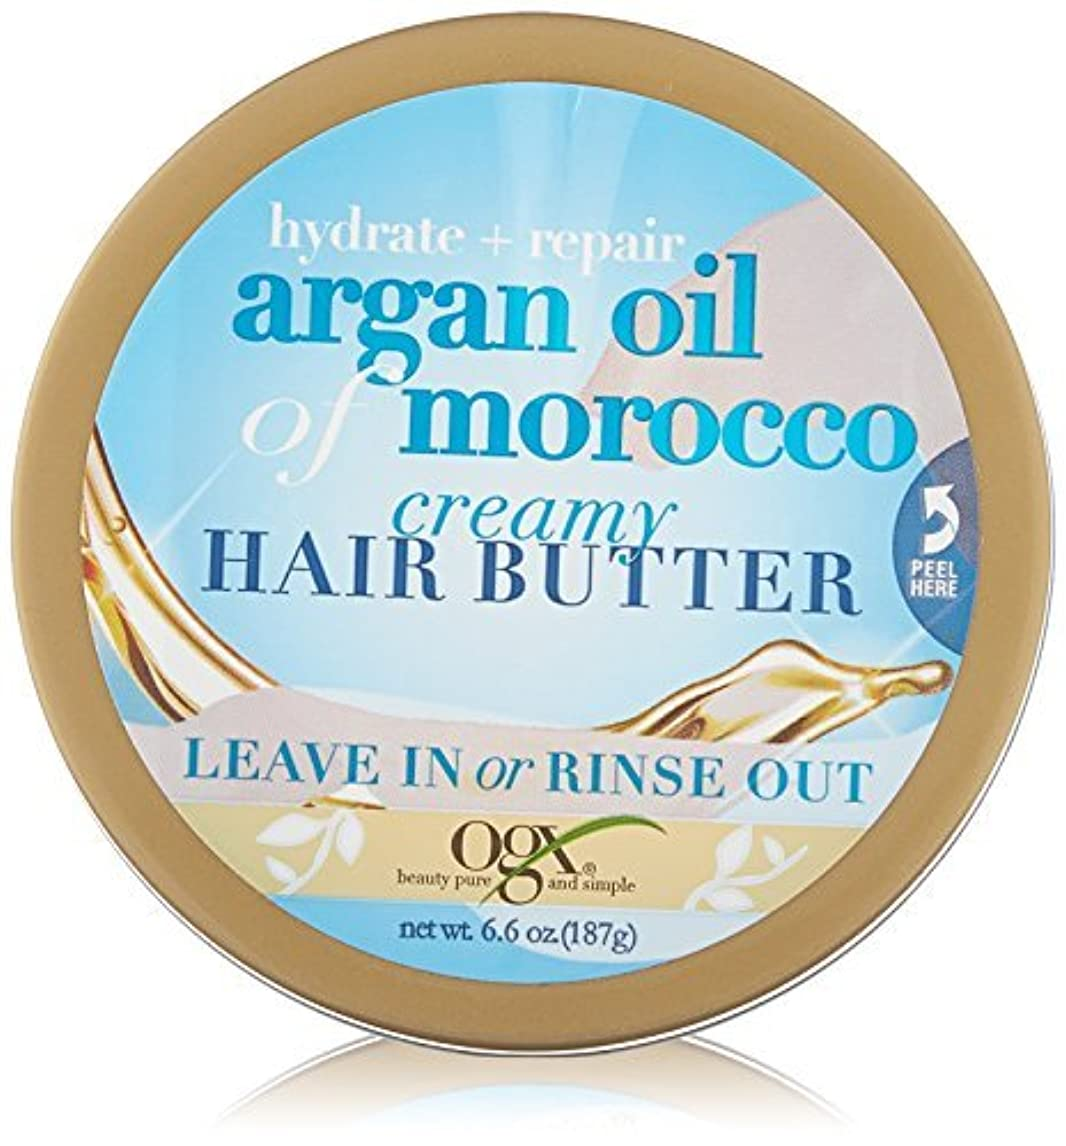 すずめ挑む悪用OGX Hydrate Plus Repair Argan Oil of Morocco, 6.6 Ounce [並行輸入品]